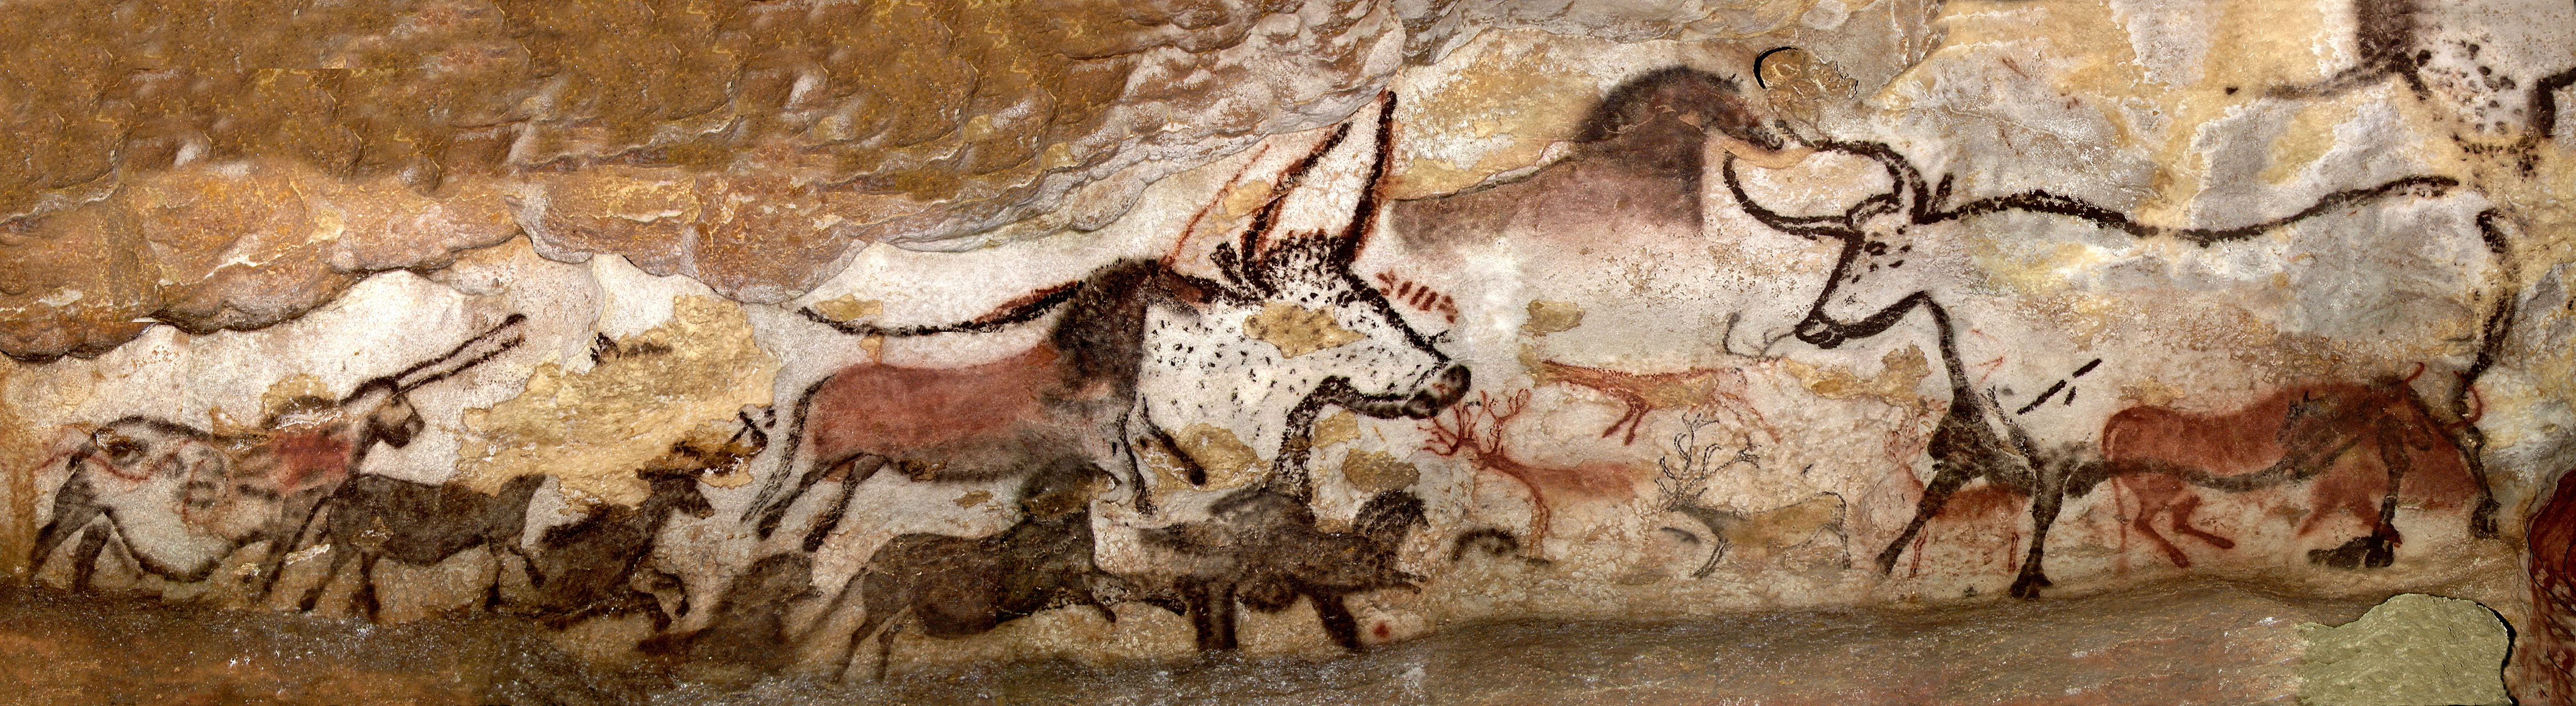 history and characteristics of the prehistoric art pieces found in the lascaux and chauvet caves In any history of art  at lascaux we have found pestles and mortars in which colours were mixed  the art galleries they created in caves were communal.